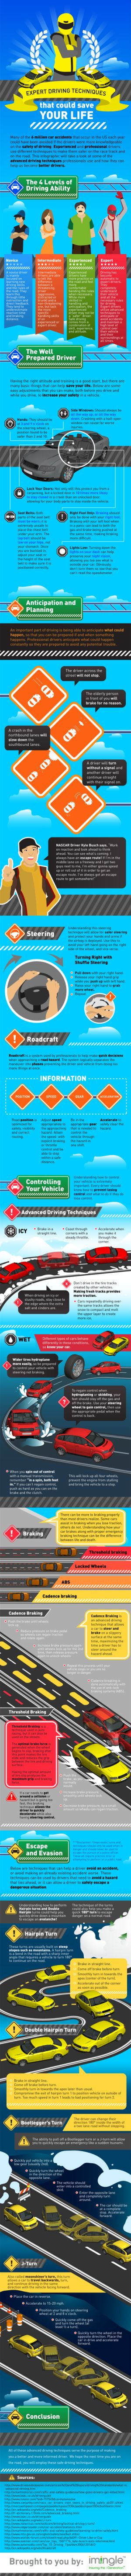 A very comprehensive info that could help drive us to better road safety! Useful for the Asdan road safety awareness short course...